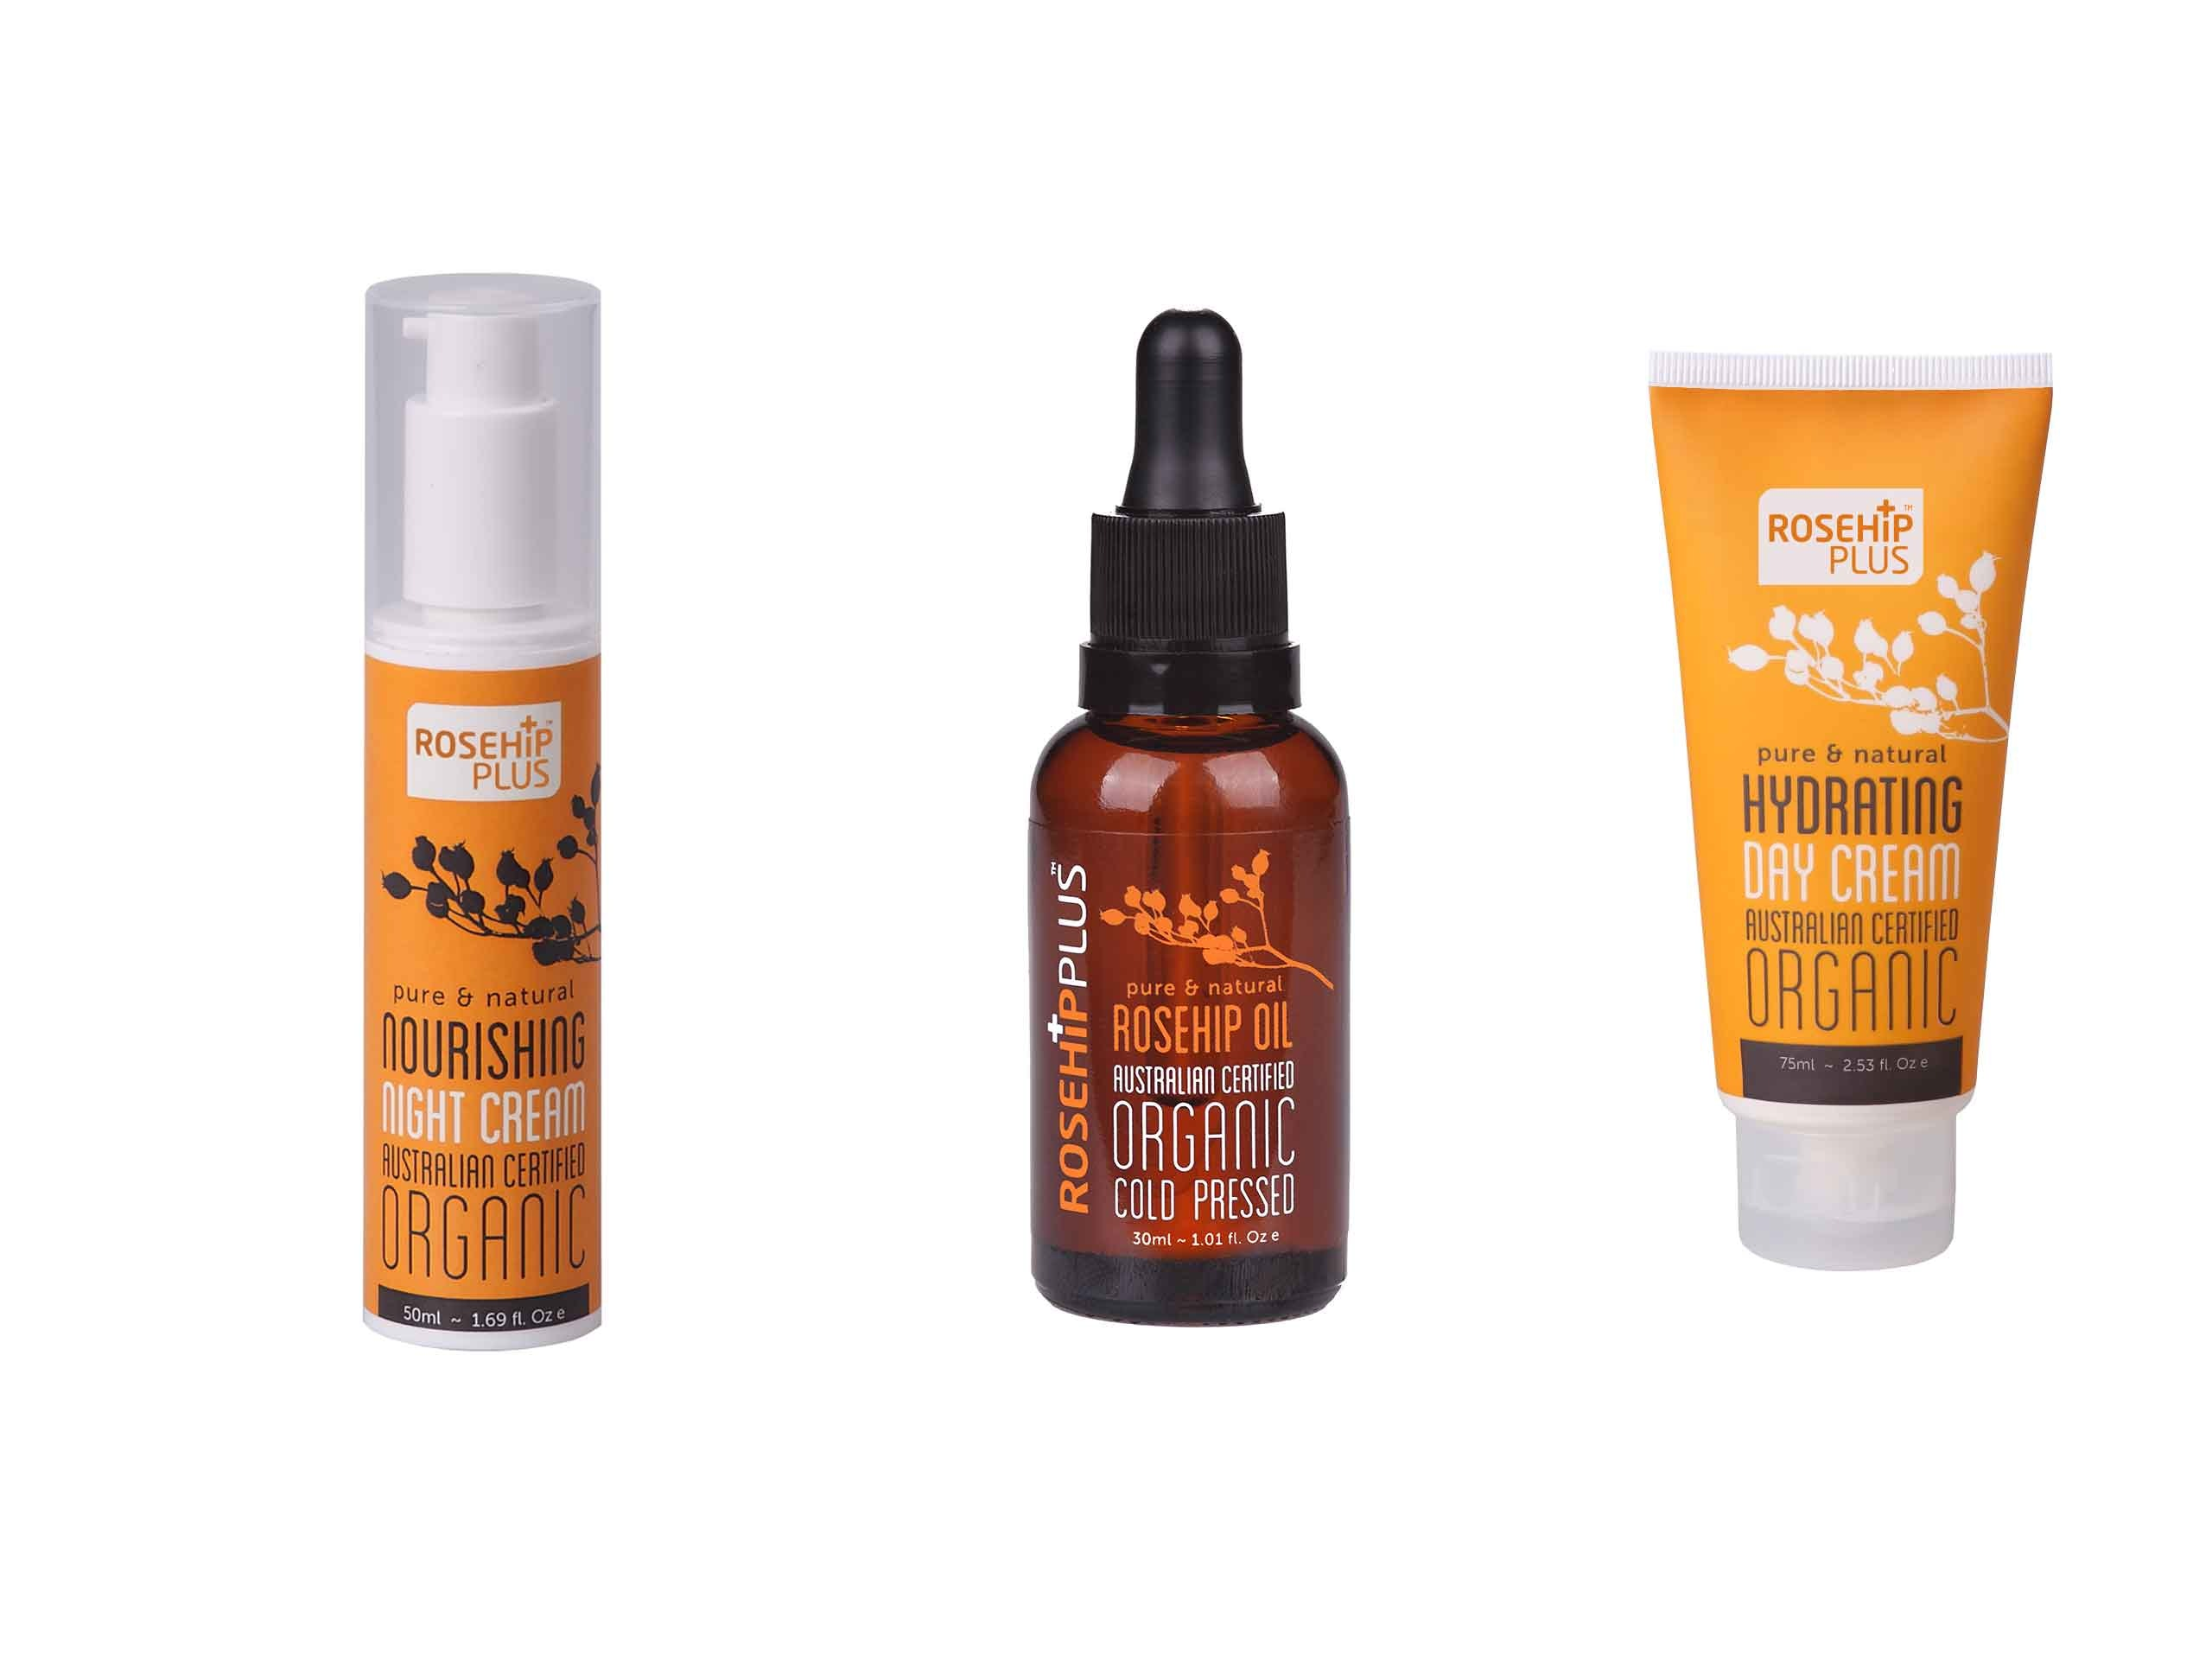 Rosehip products